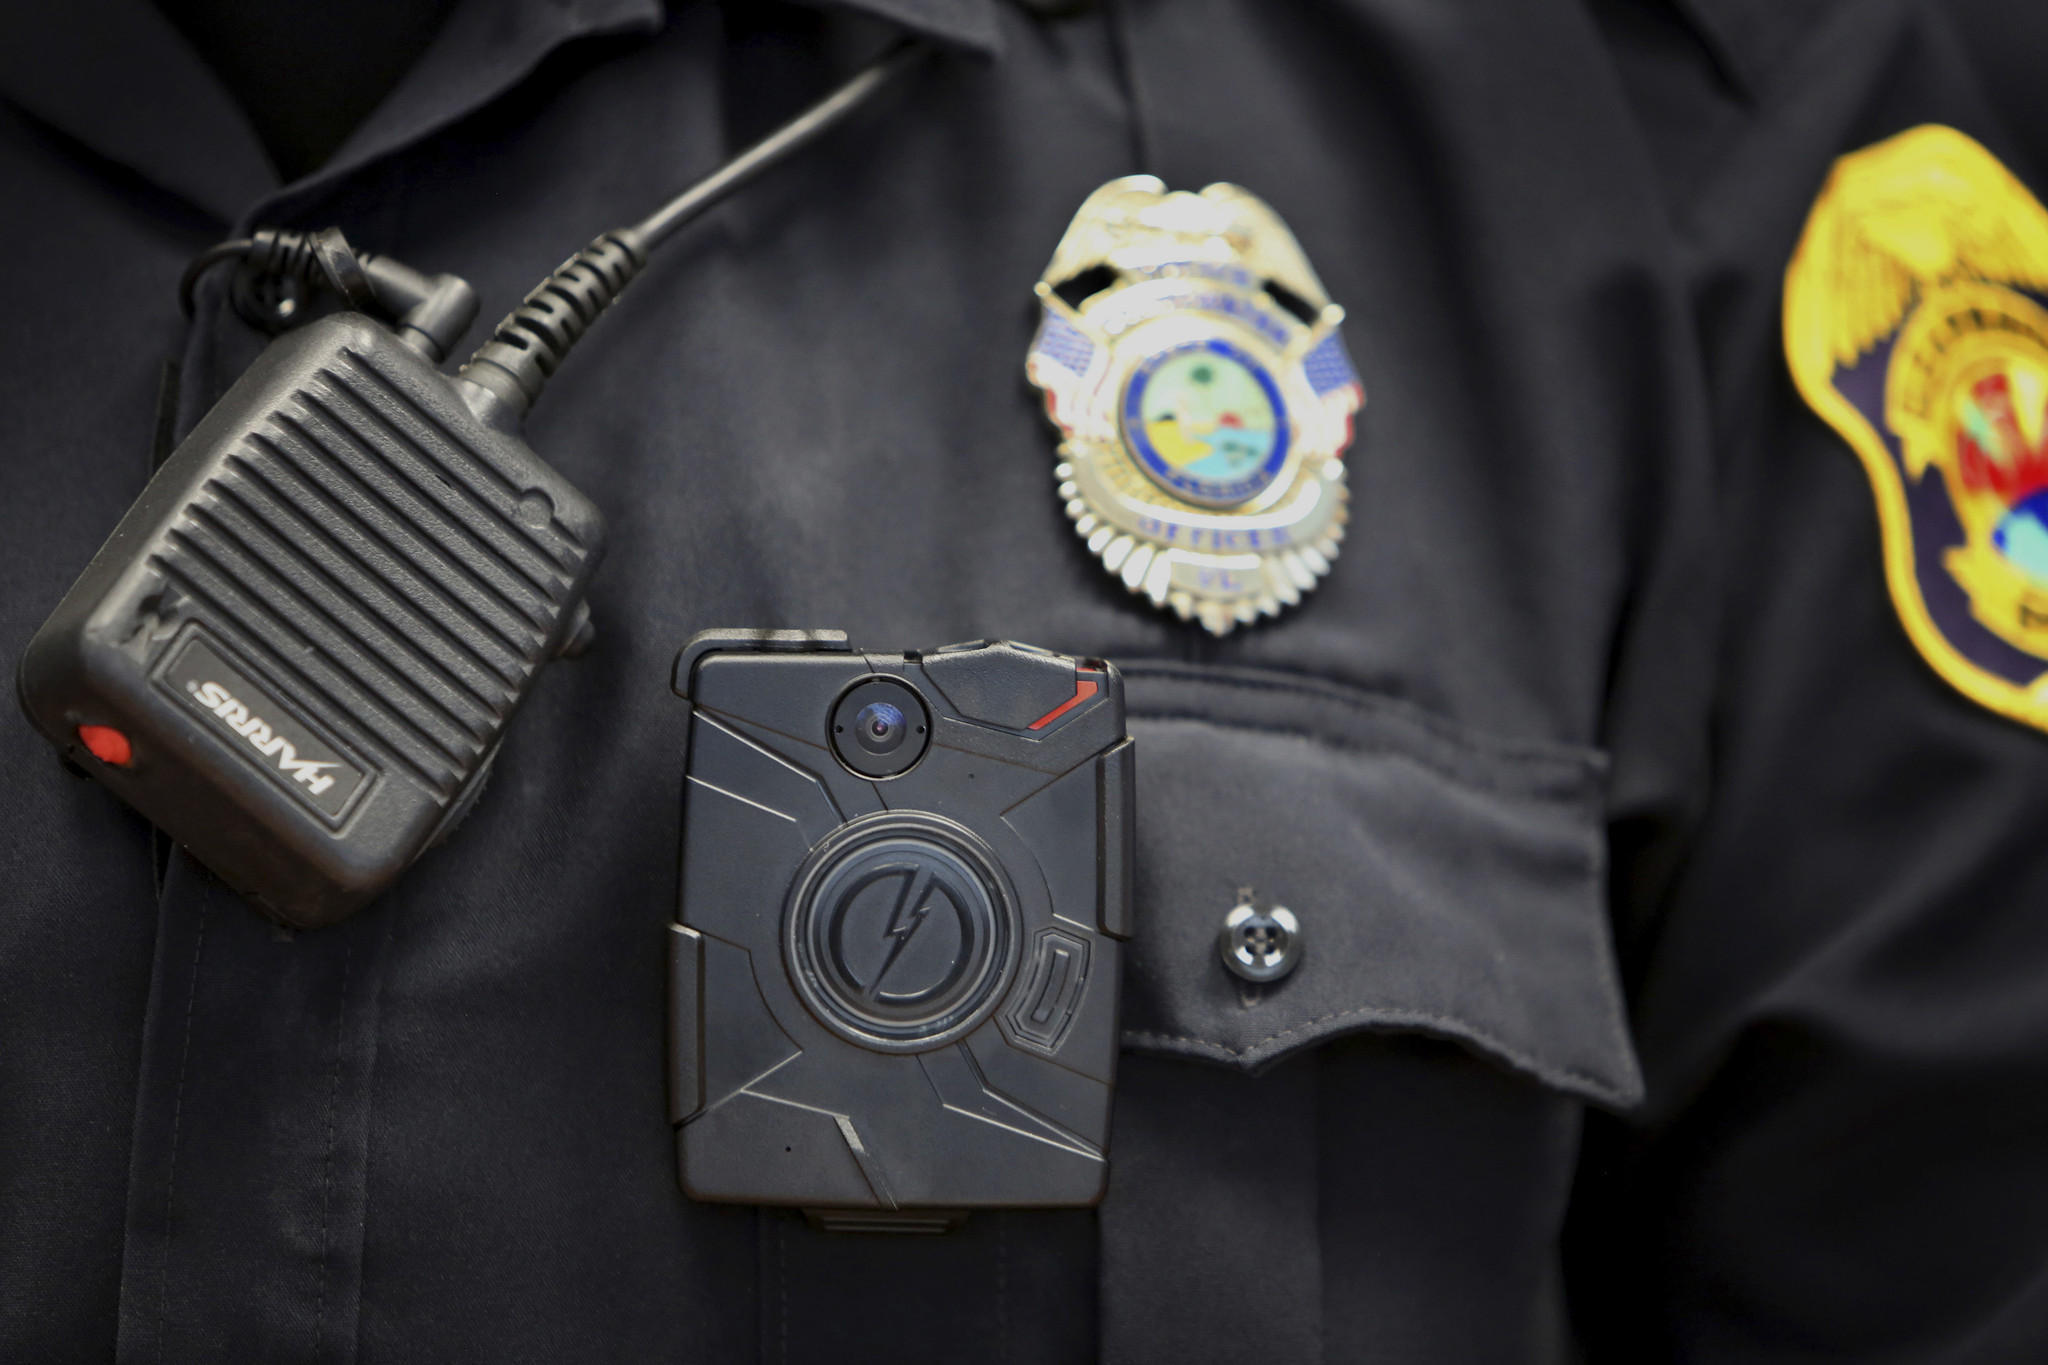 Following Federal Guidelines May Help Acceptance of Police Use of Body-Worn Cameras